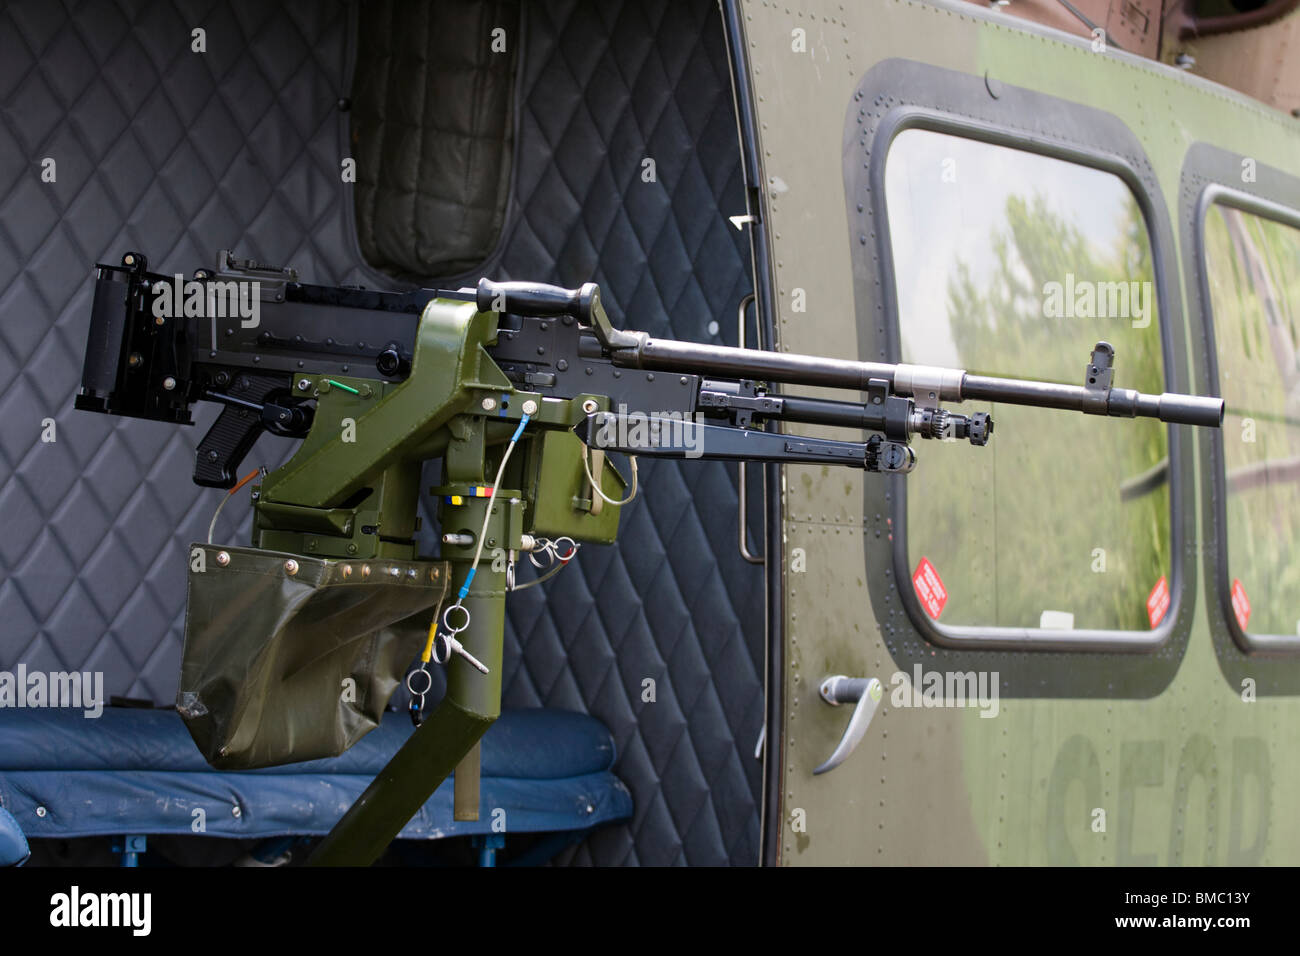 Helicopter With Machine Gun Stock Photos Amp Helicopter With